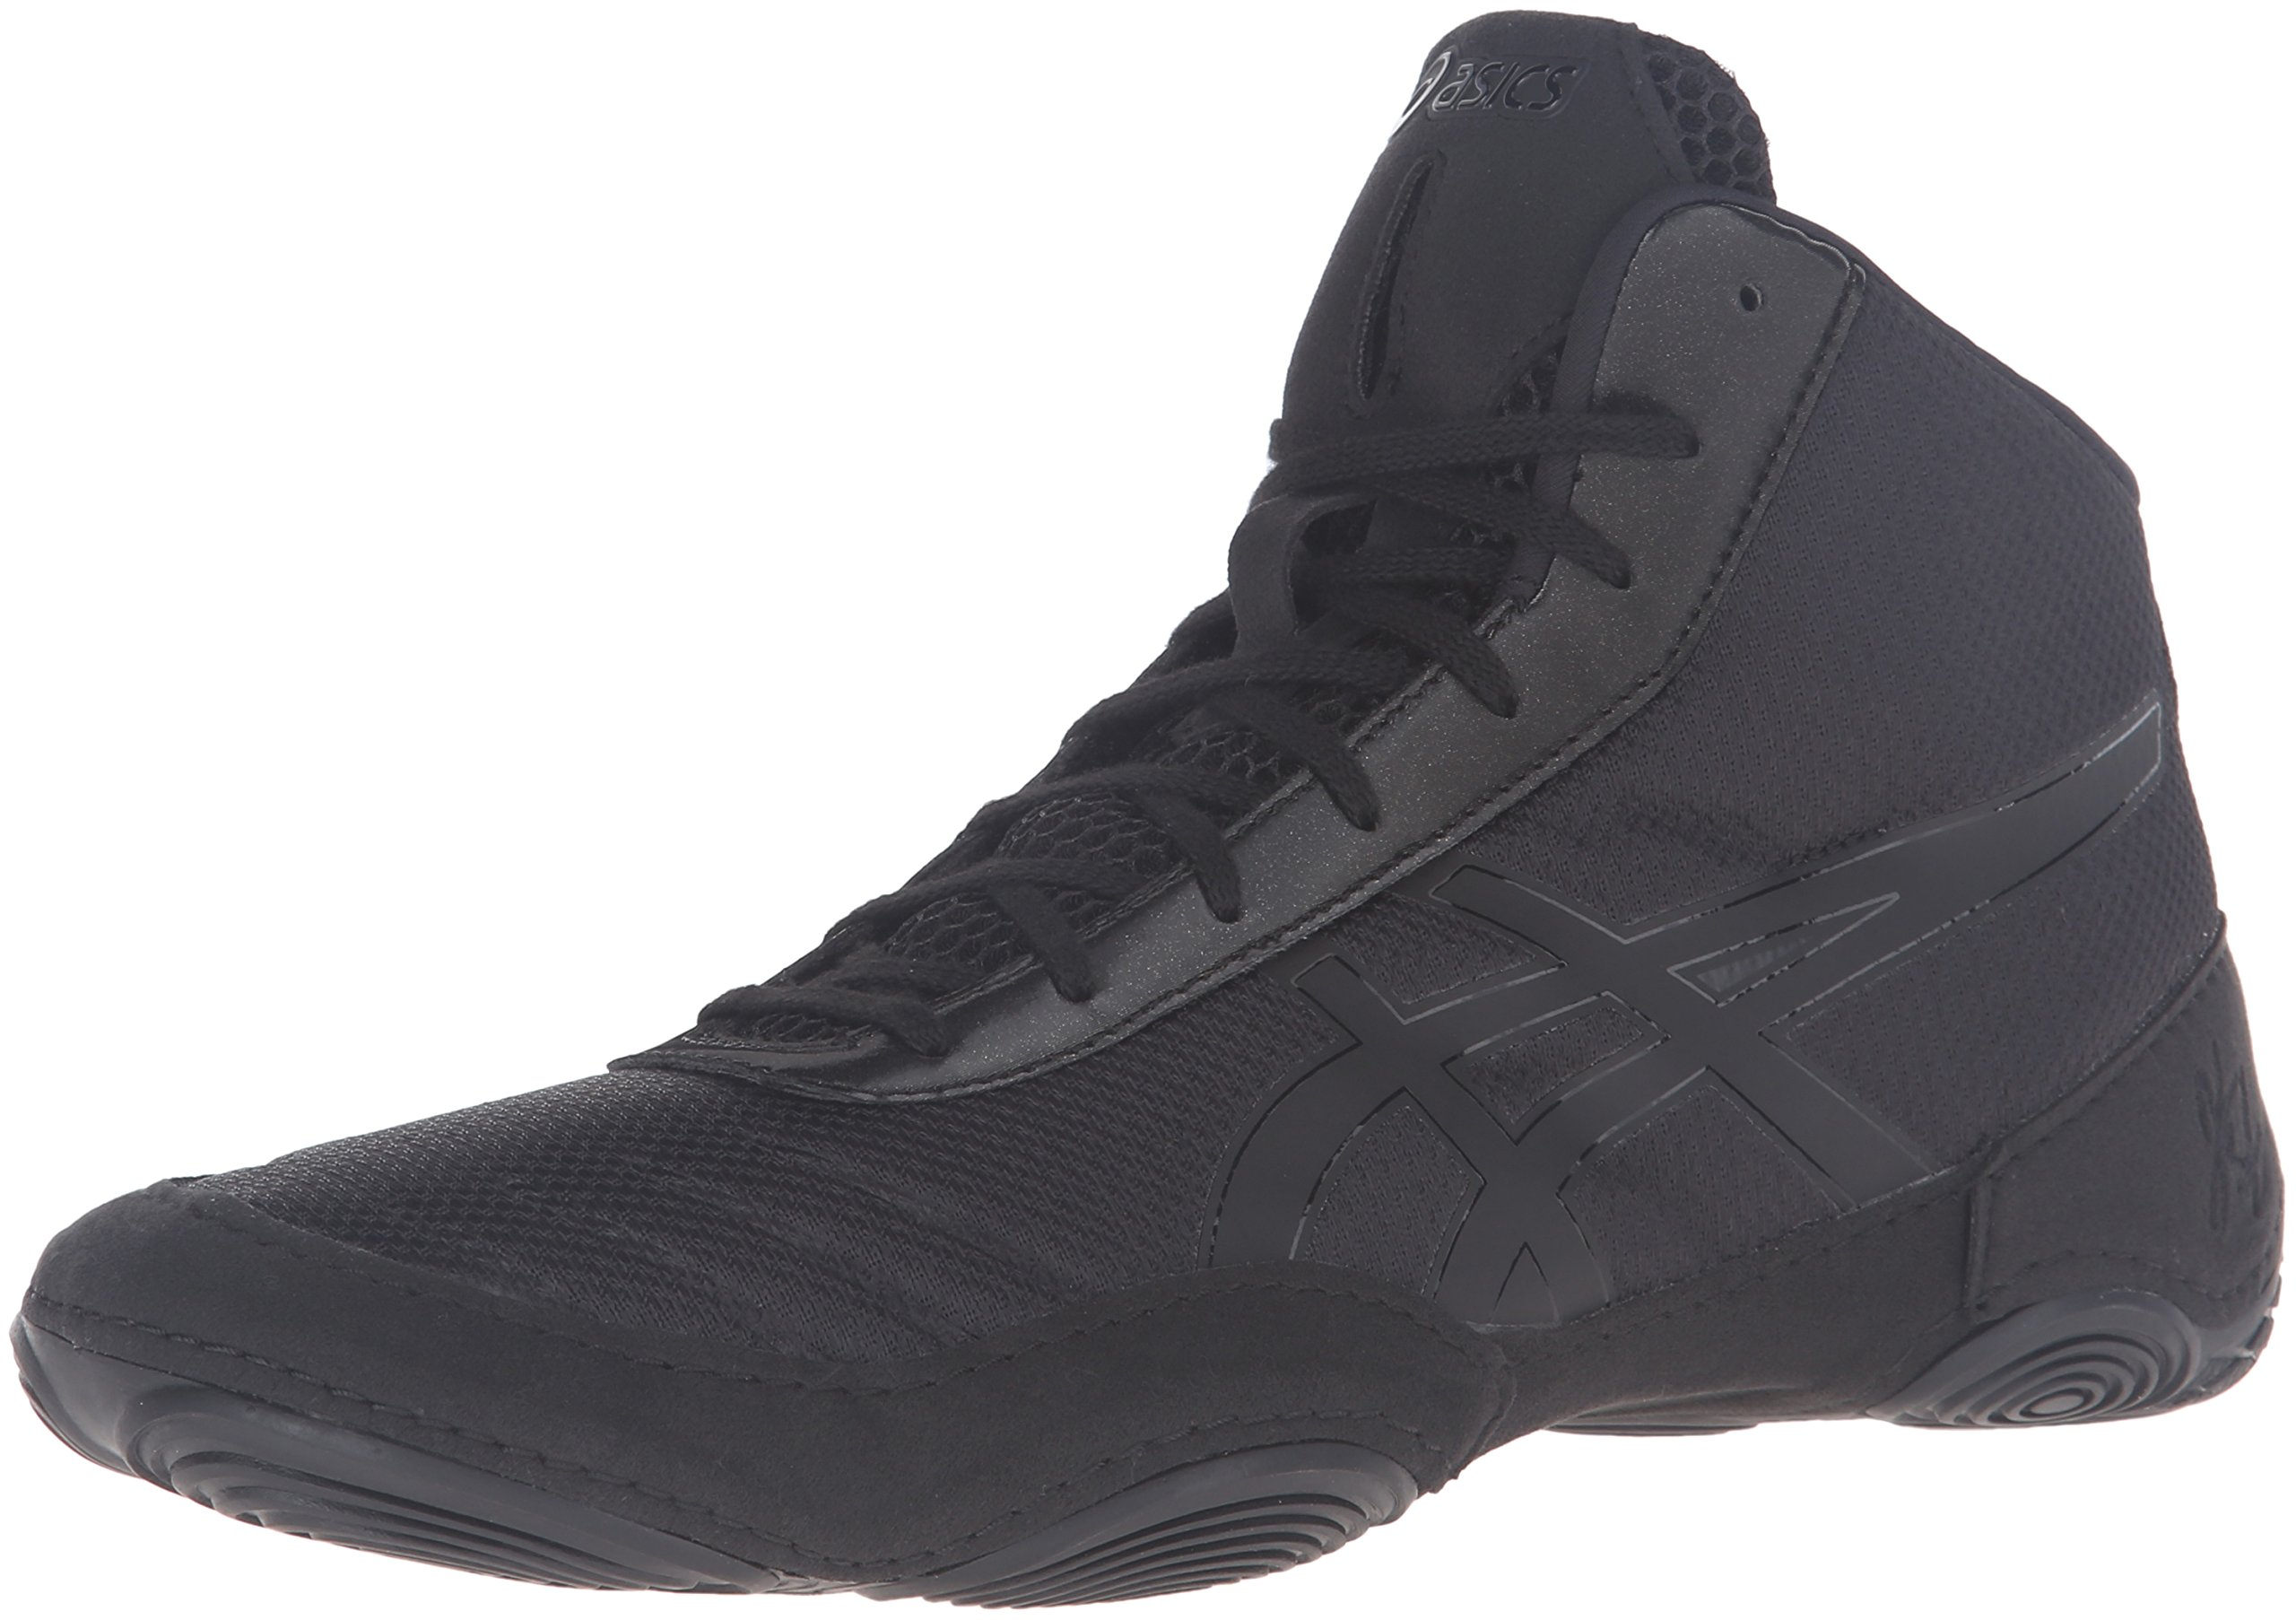 ASICS Men's JB Elite V2.0 Wrestling Shoe, Black/Onyx, 13 M US by ASICS